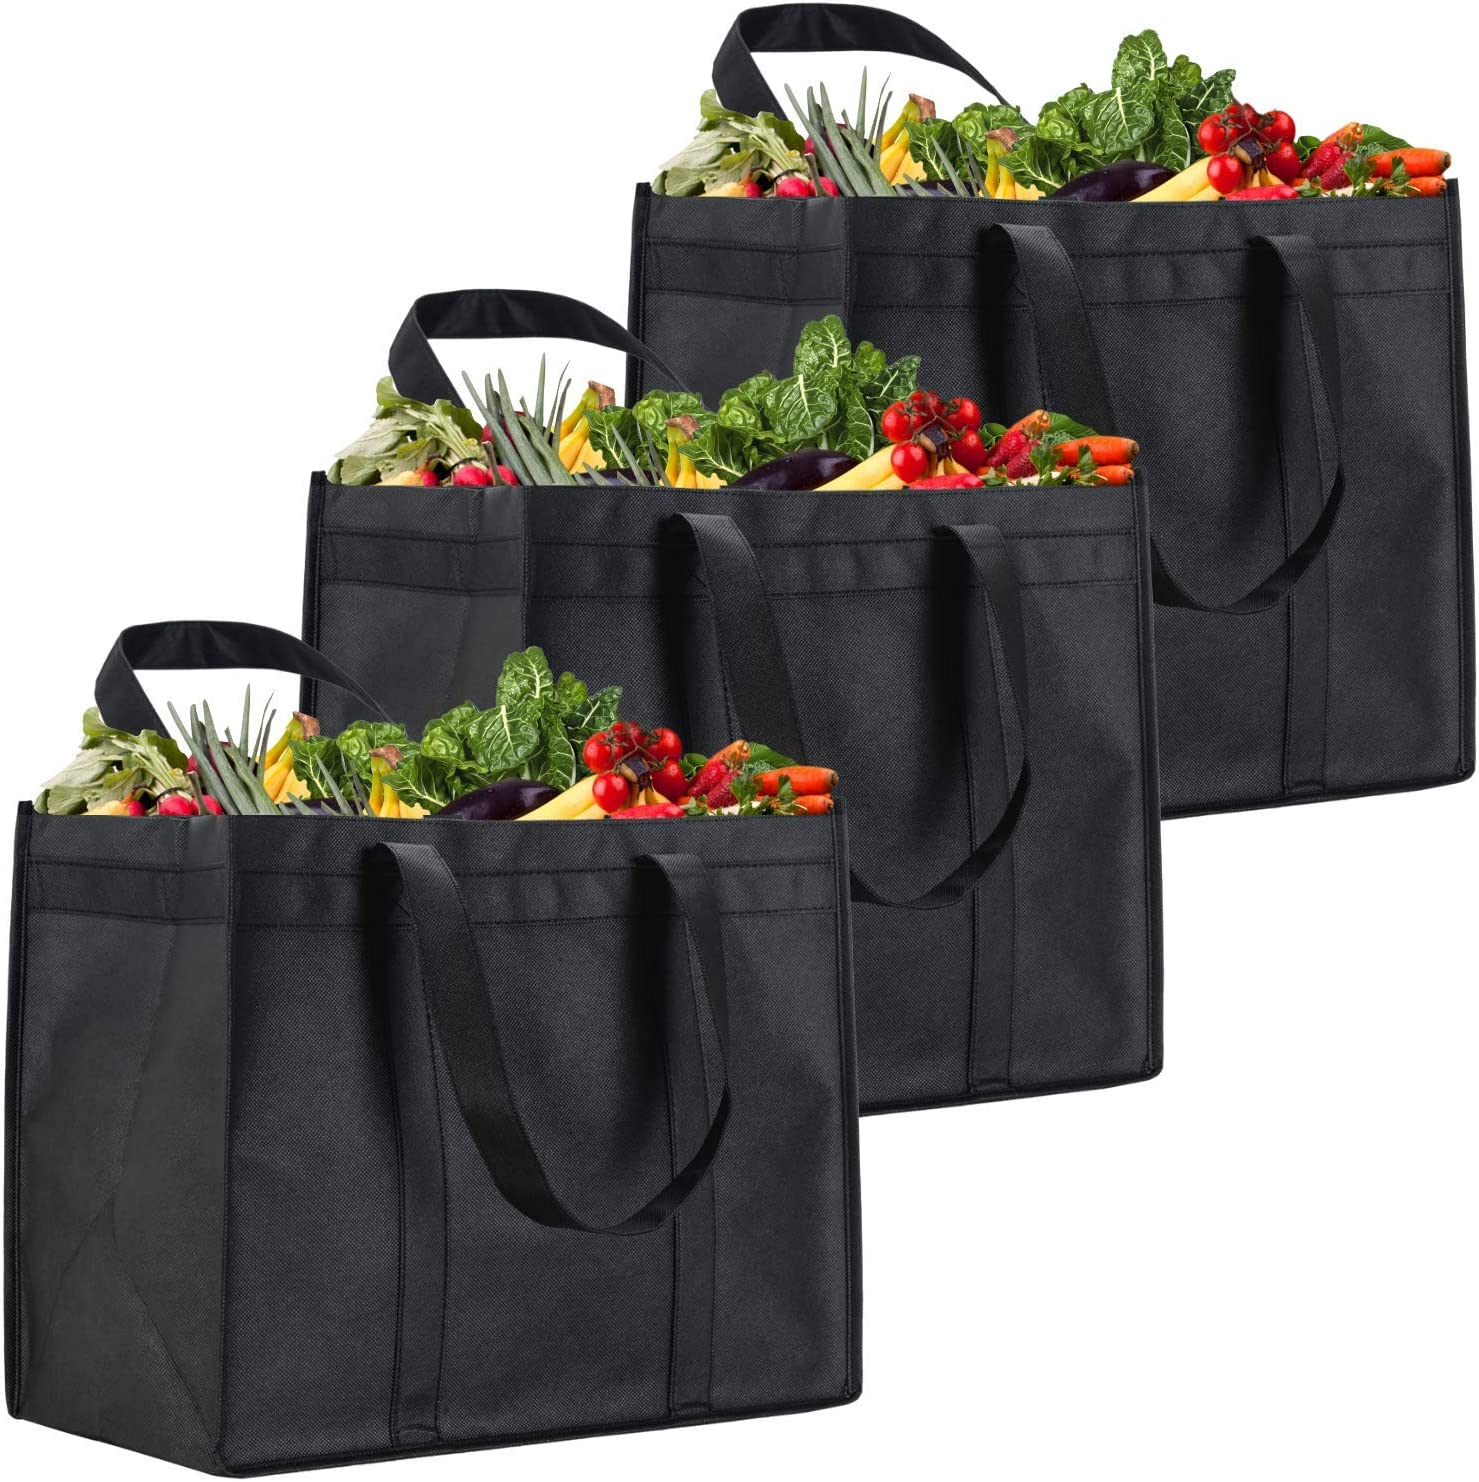 NZ Home XL Reusable Grocery Bags, Heavy Duty Shopping Tote, Stands Upright, Foldable, Washable (Black 3 Pack)